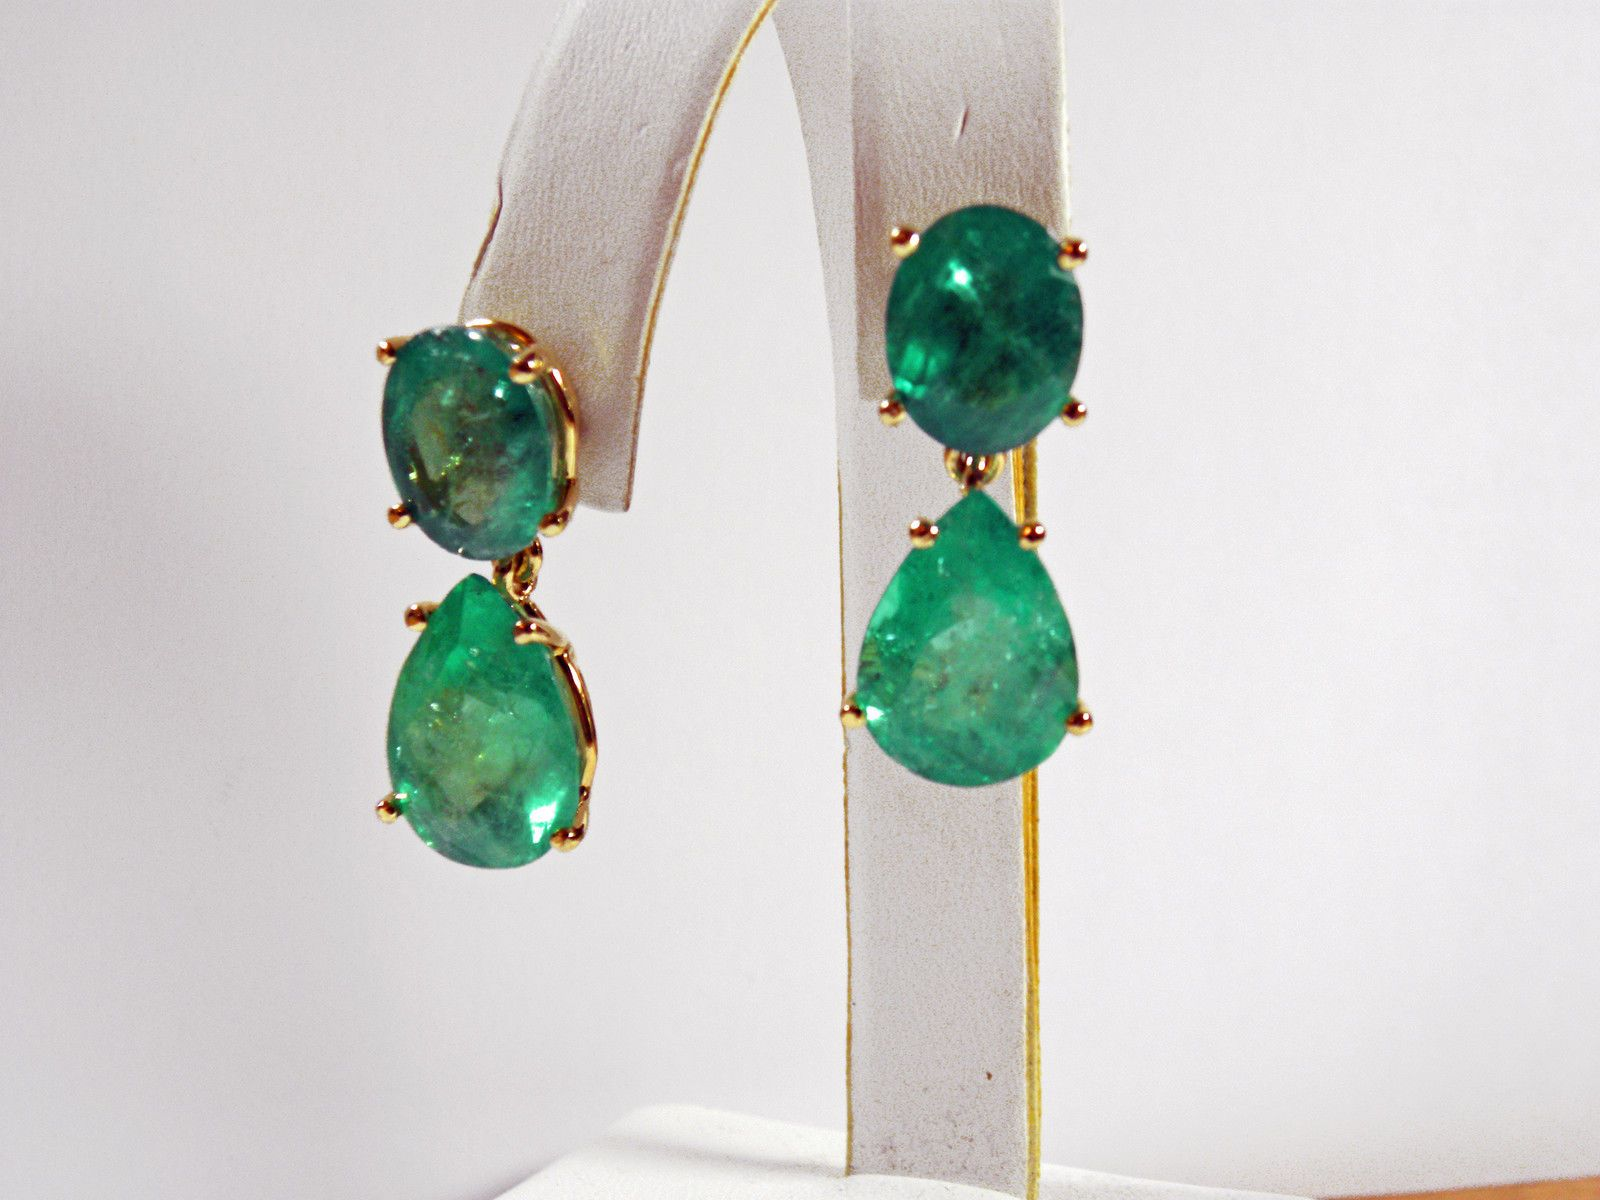 dyed rings teardrop gold ring earrings emeralds emerald natural pin